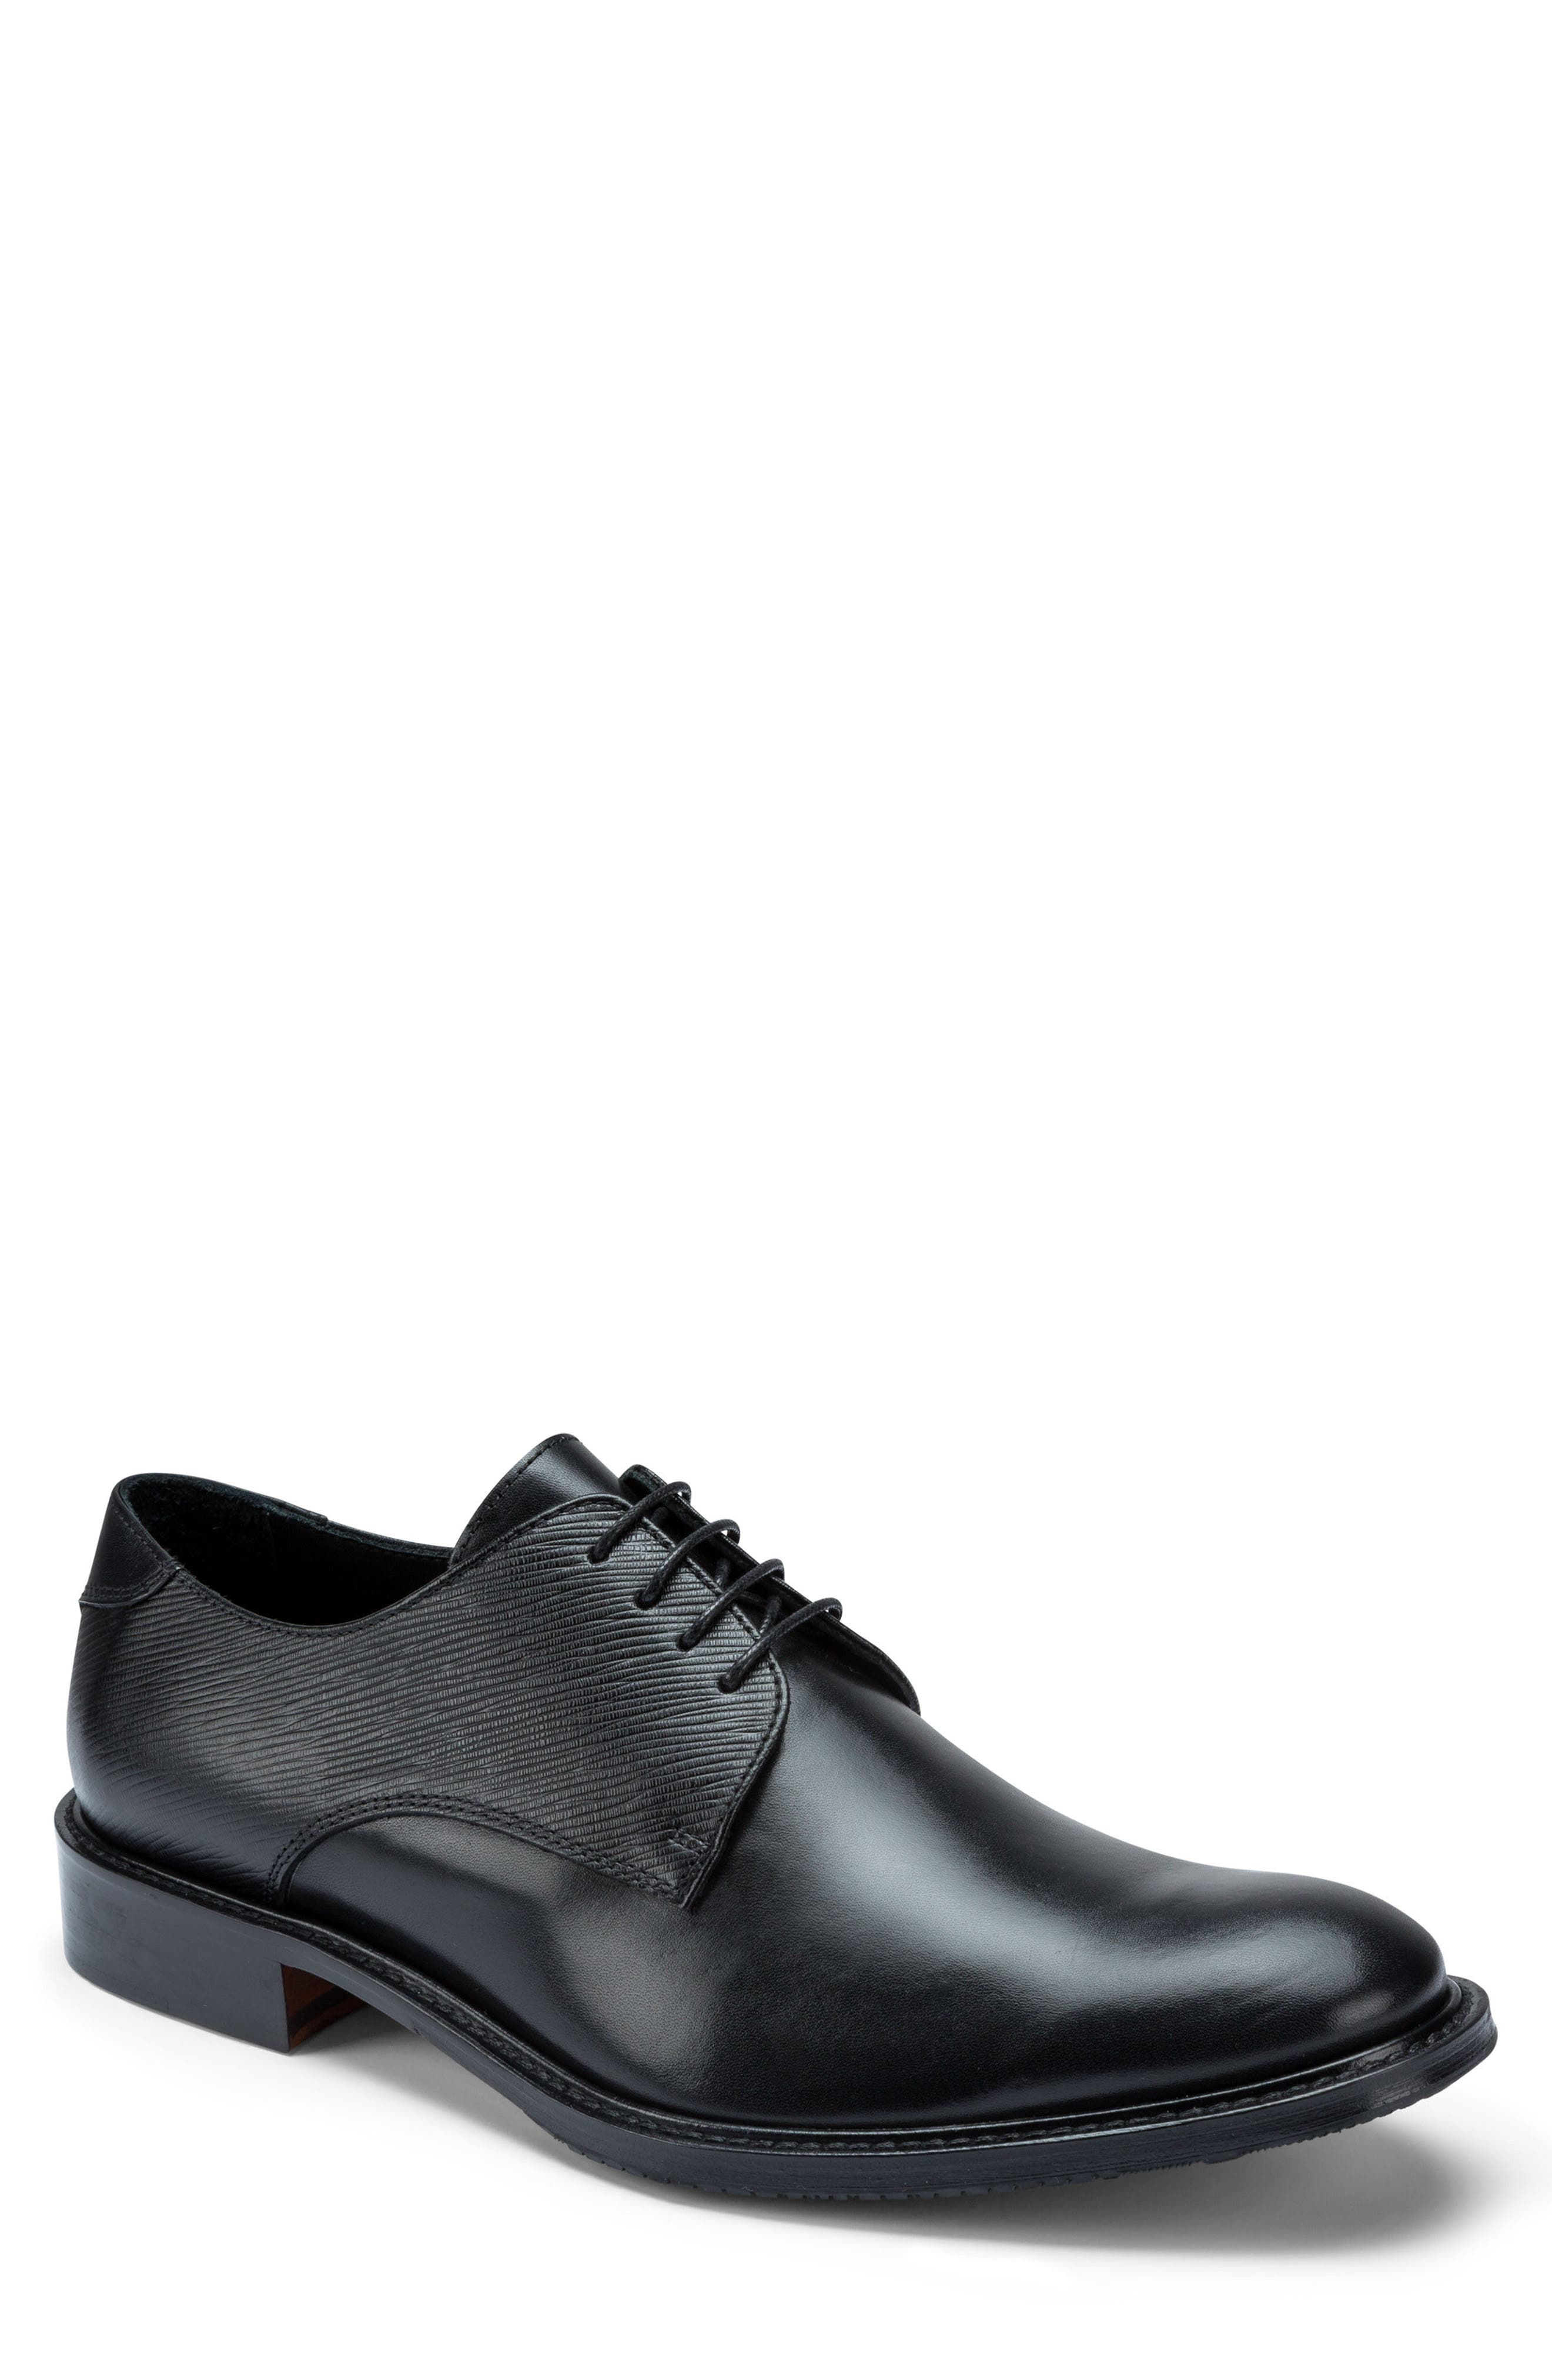 Sorrento Plain Toe Derby,                         Main,                         color, Nero Leather